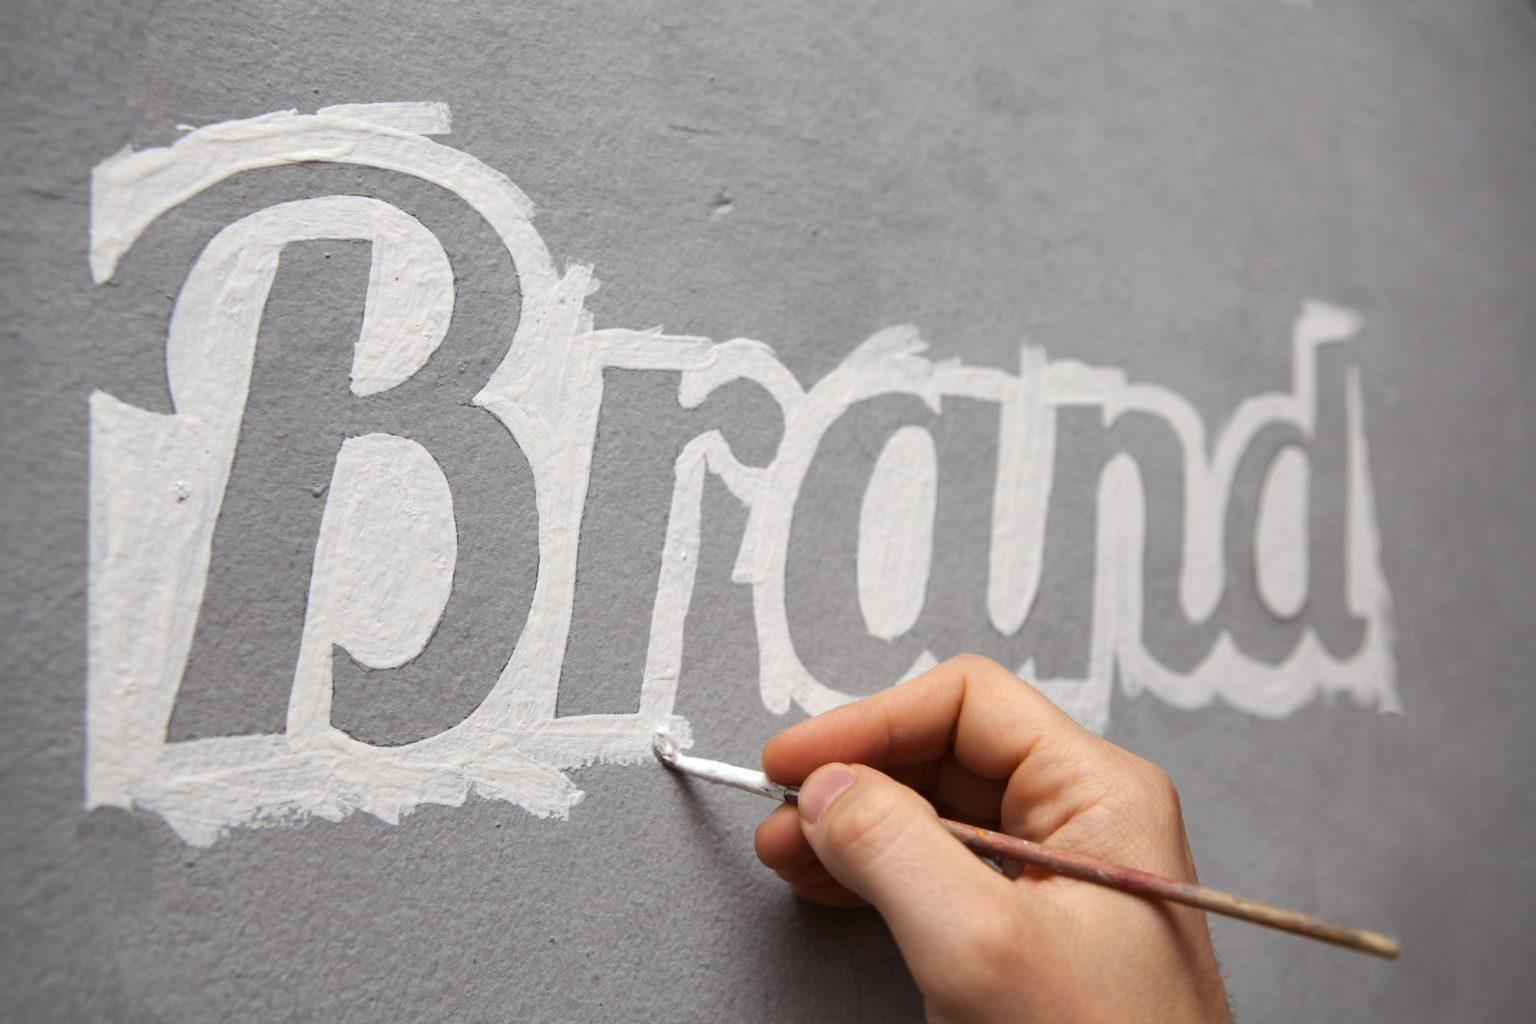 Branding: Are You Ready to Make an Effort?